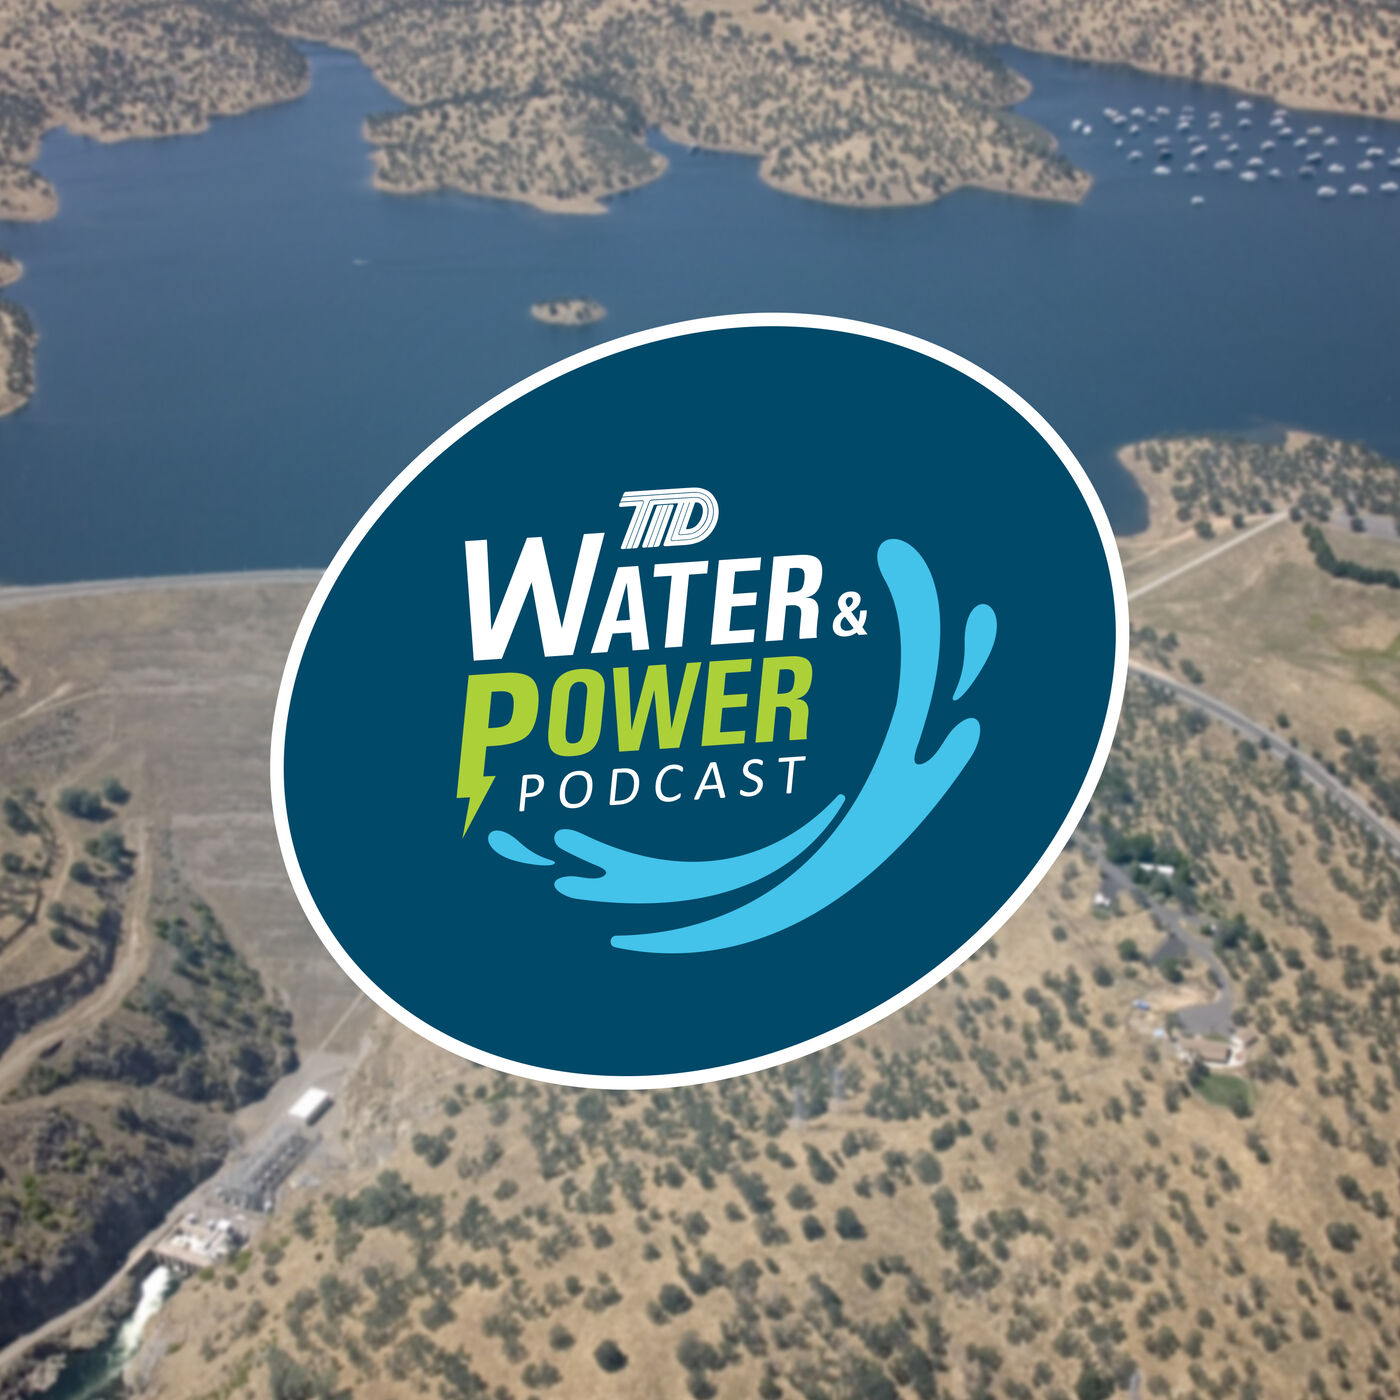 TID Water & Power Podcast